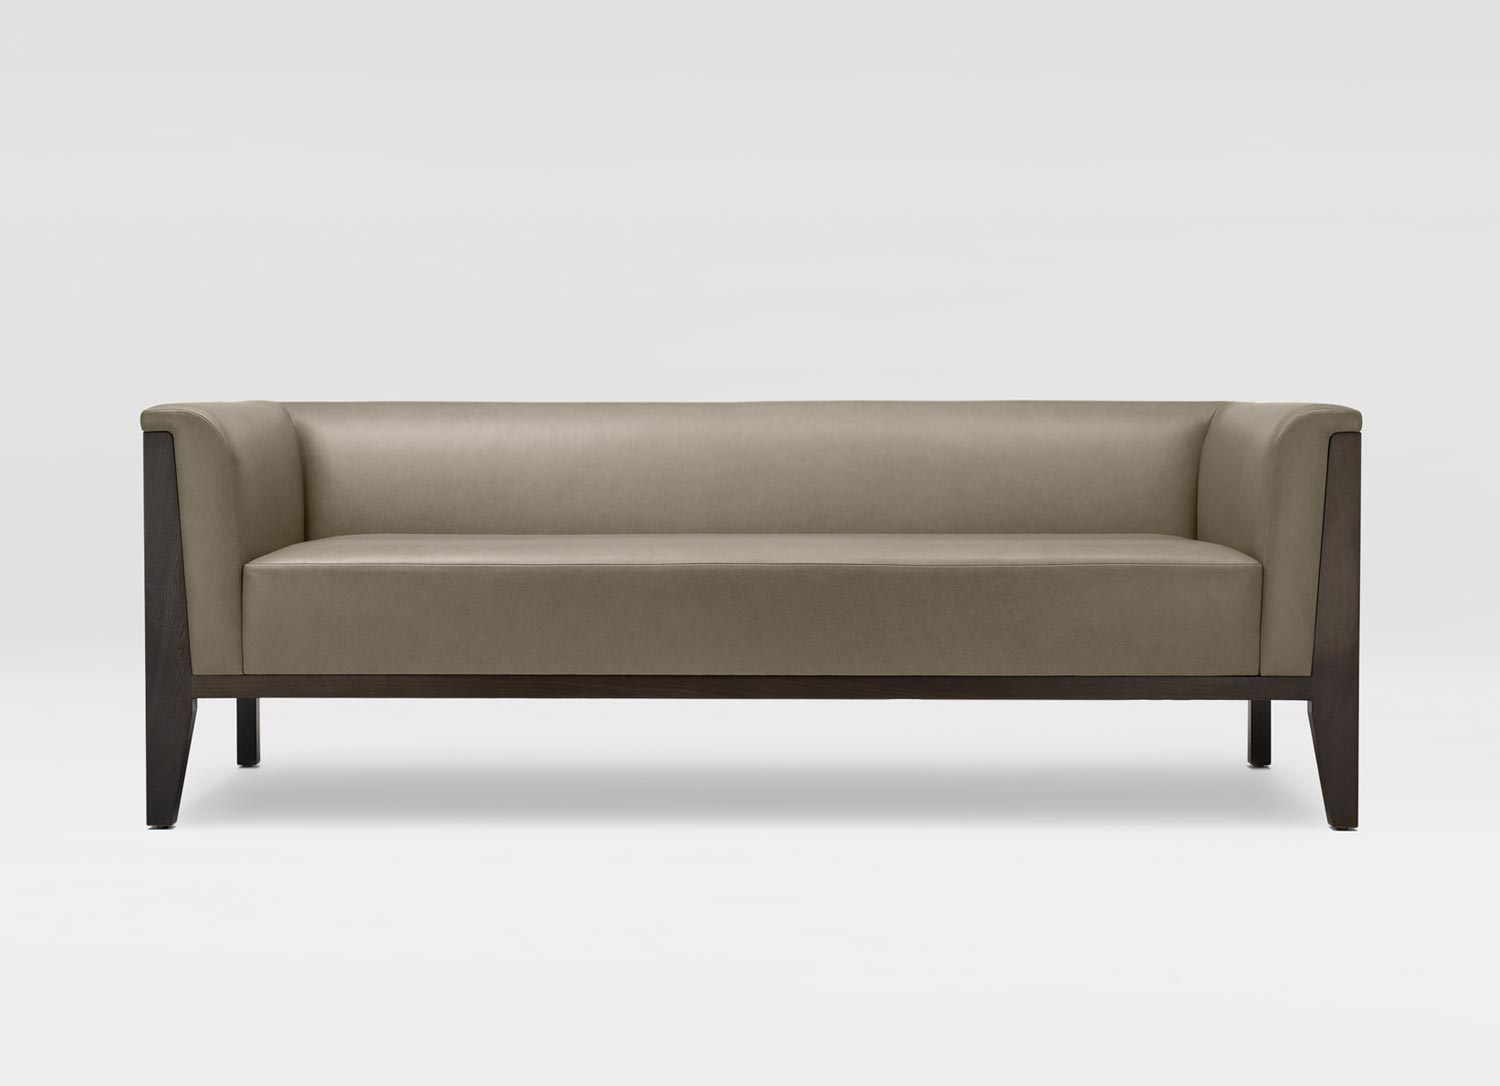 Yves hall sofa coraggio for Images of couch for hall rennes